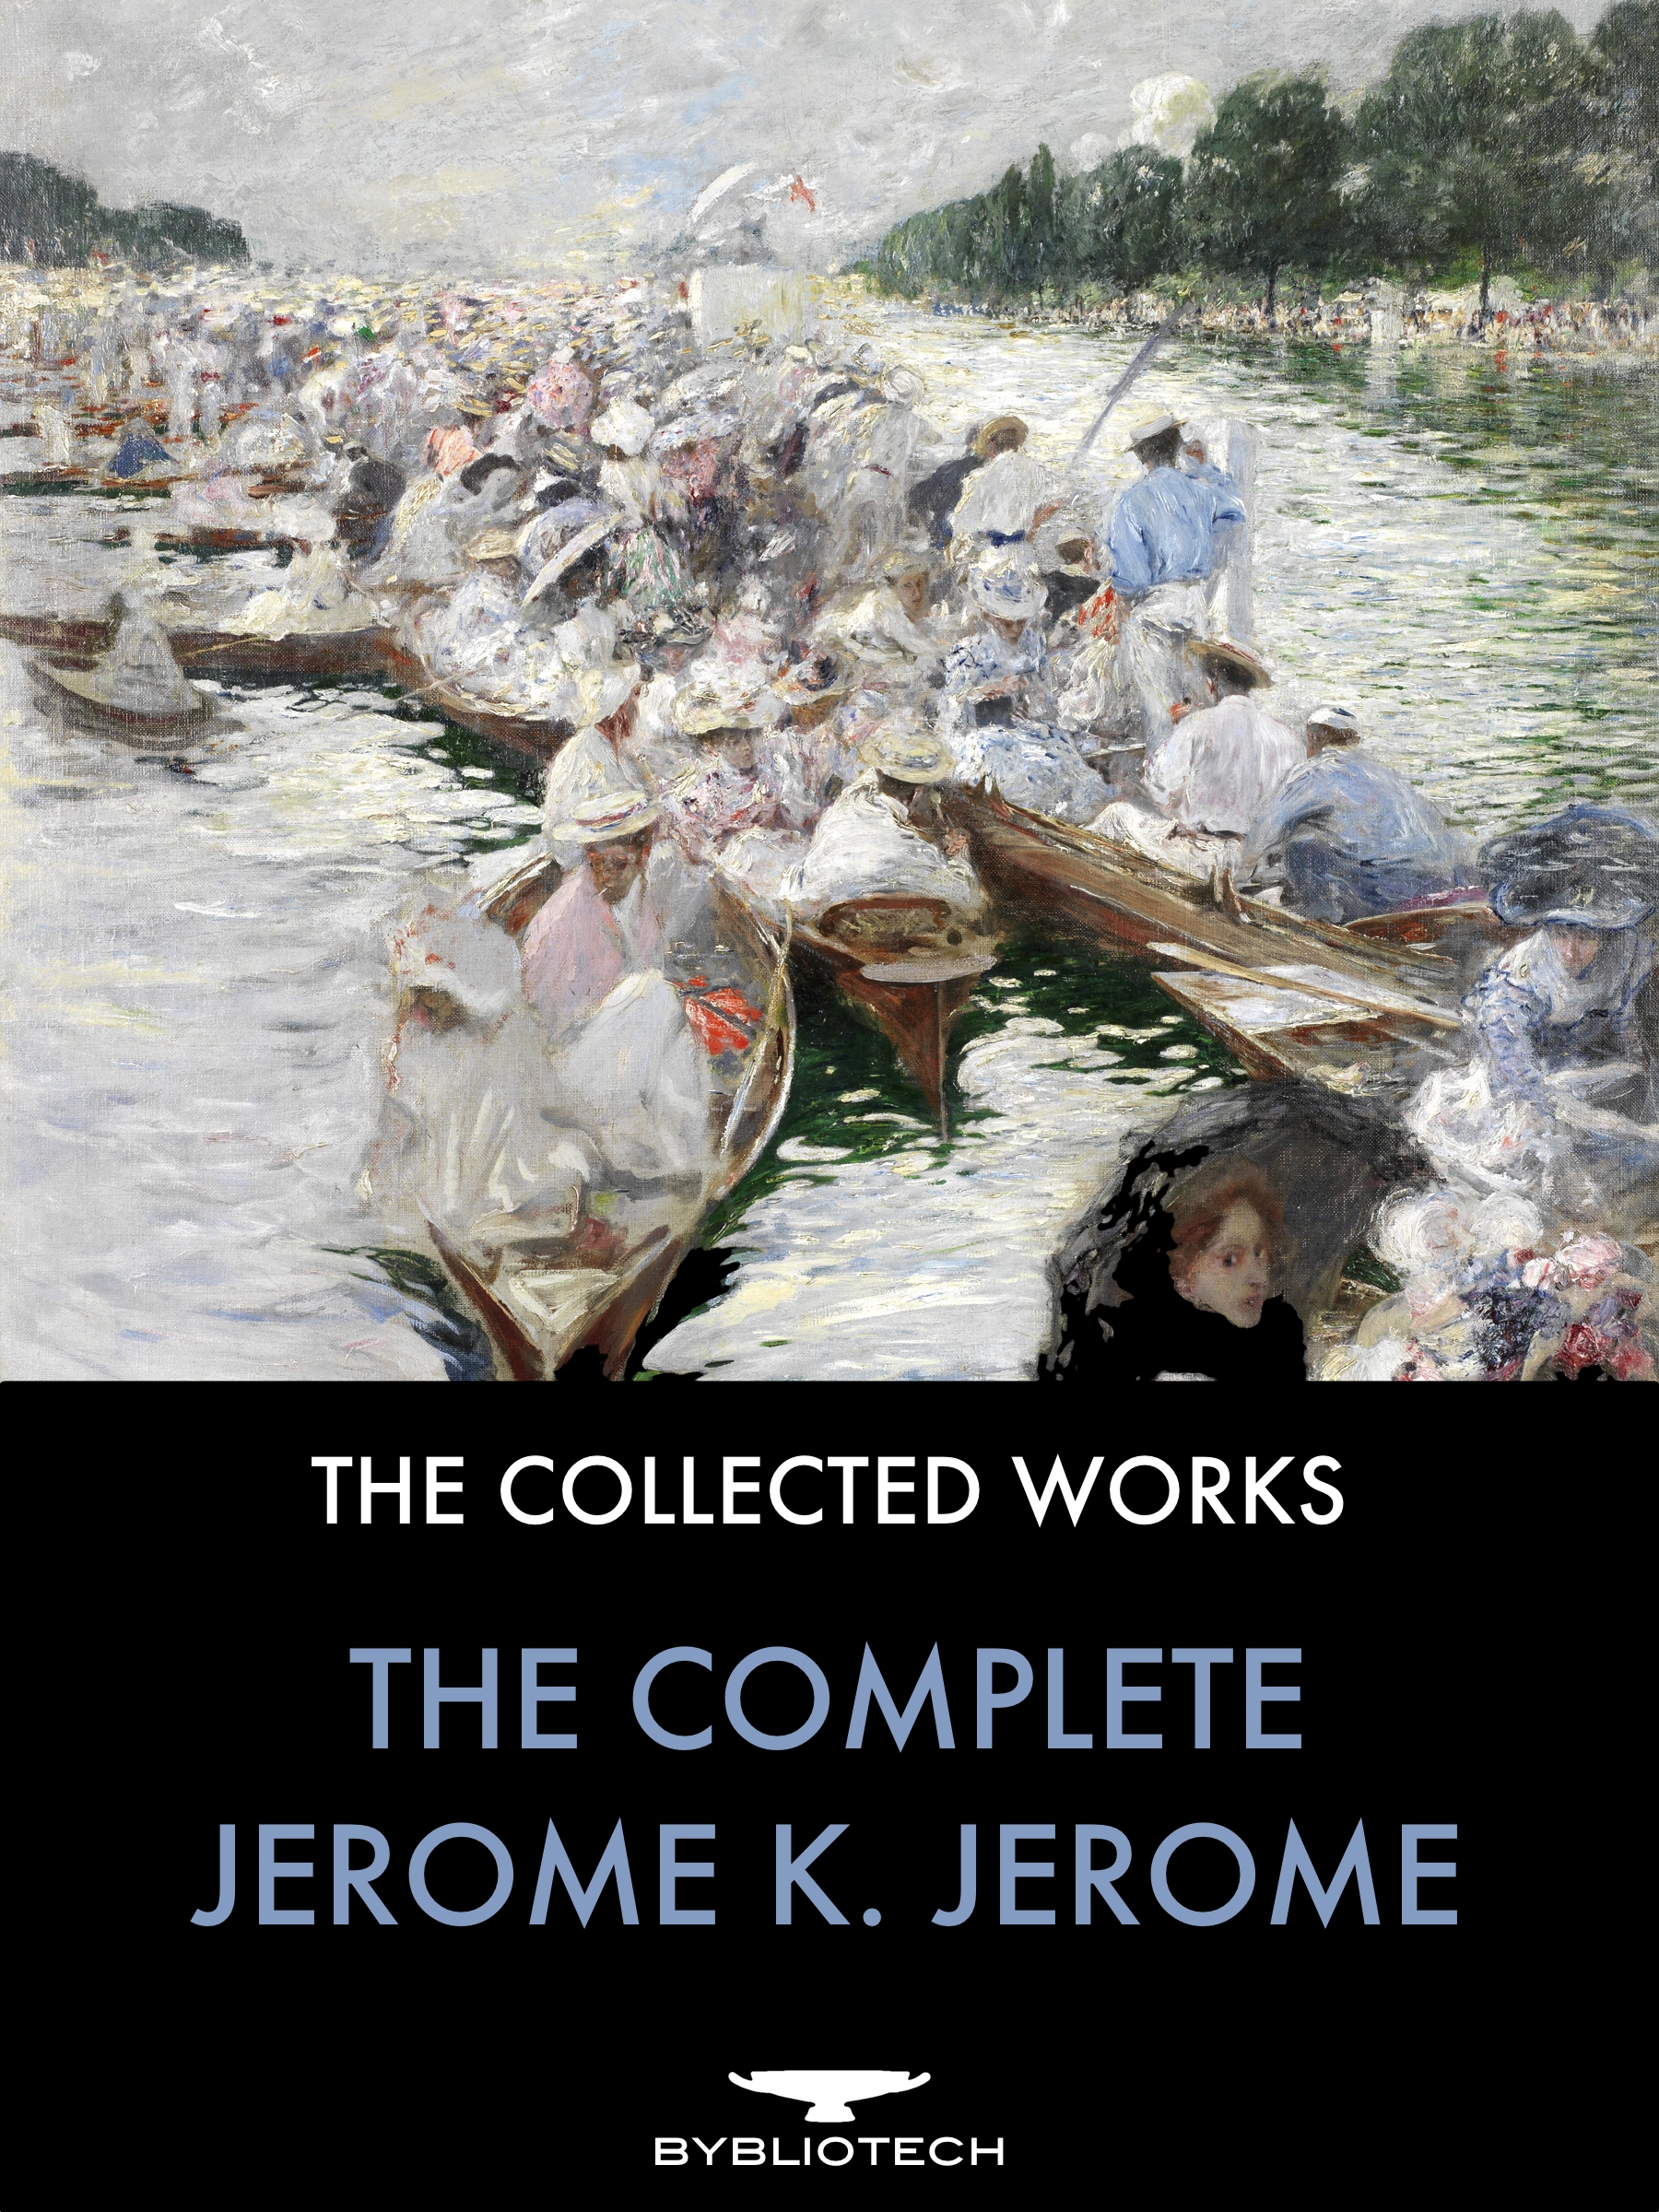 The Complete Jerome K. Jerome